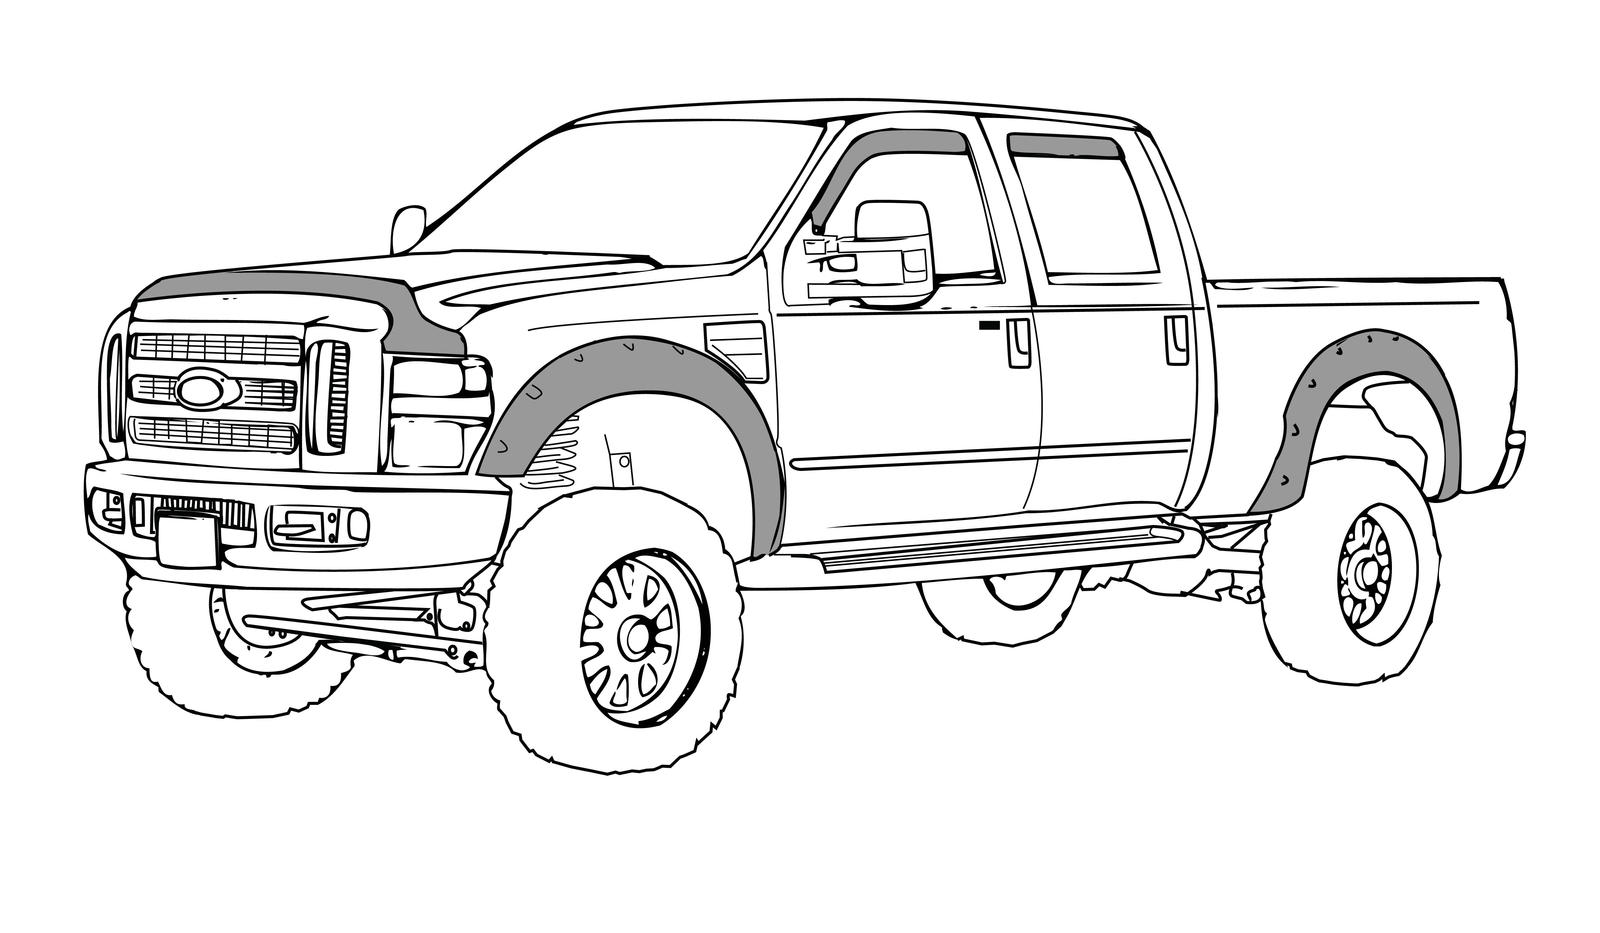 dodge ram truck coloring pages dodge ram coloring pages coloring home truck pages coloring ram dodge